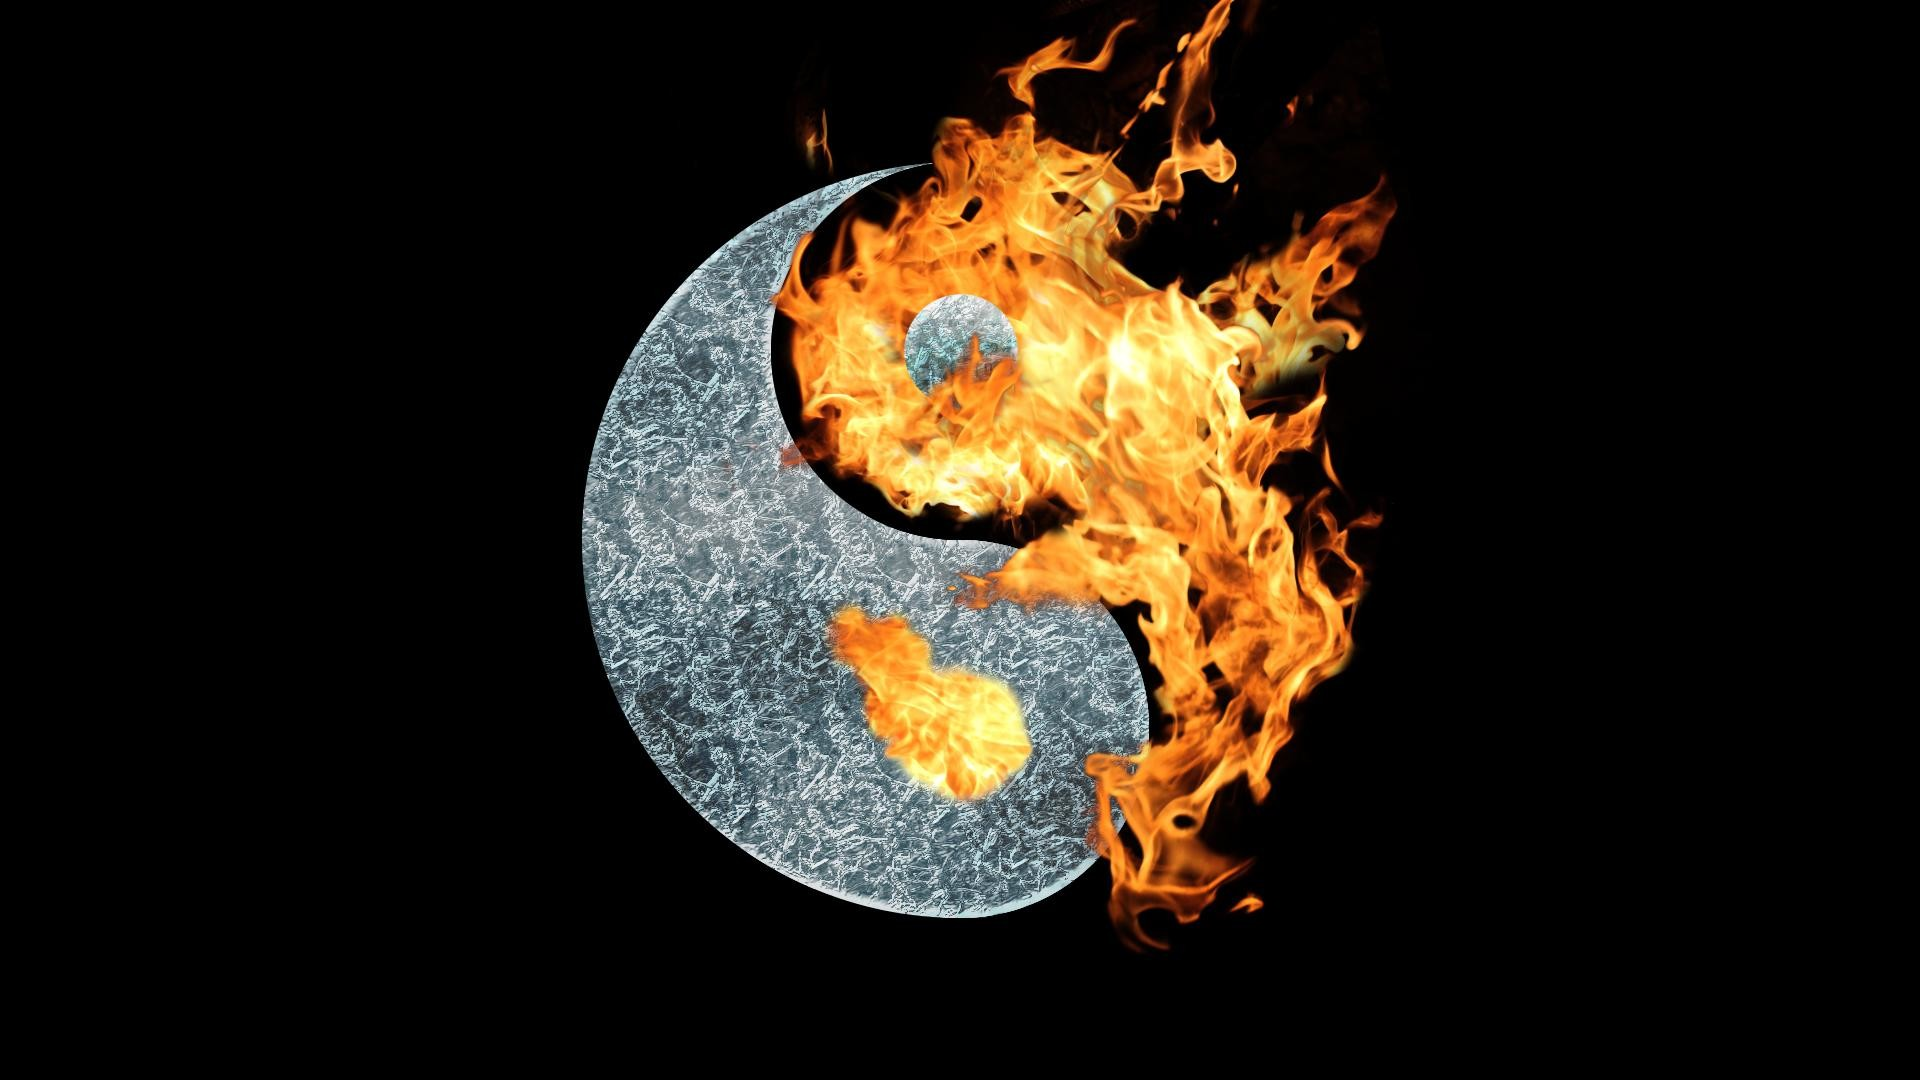 Res: 1920x1080, Fire and Ice Yin Yang Wallpaper Wallpaper